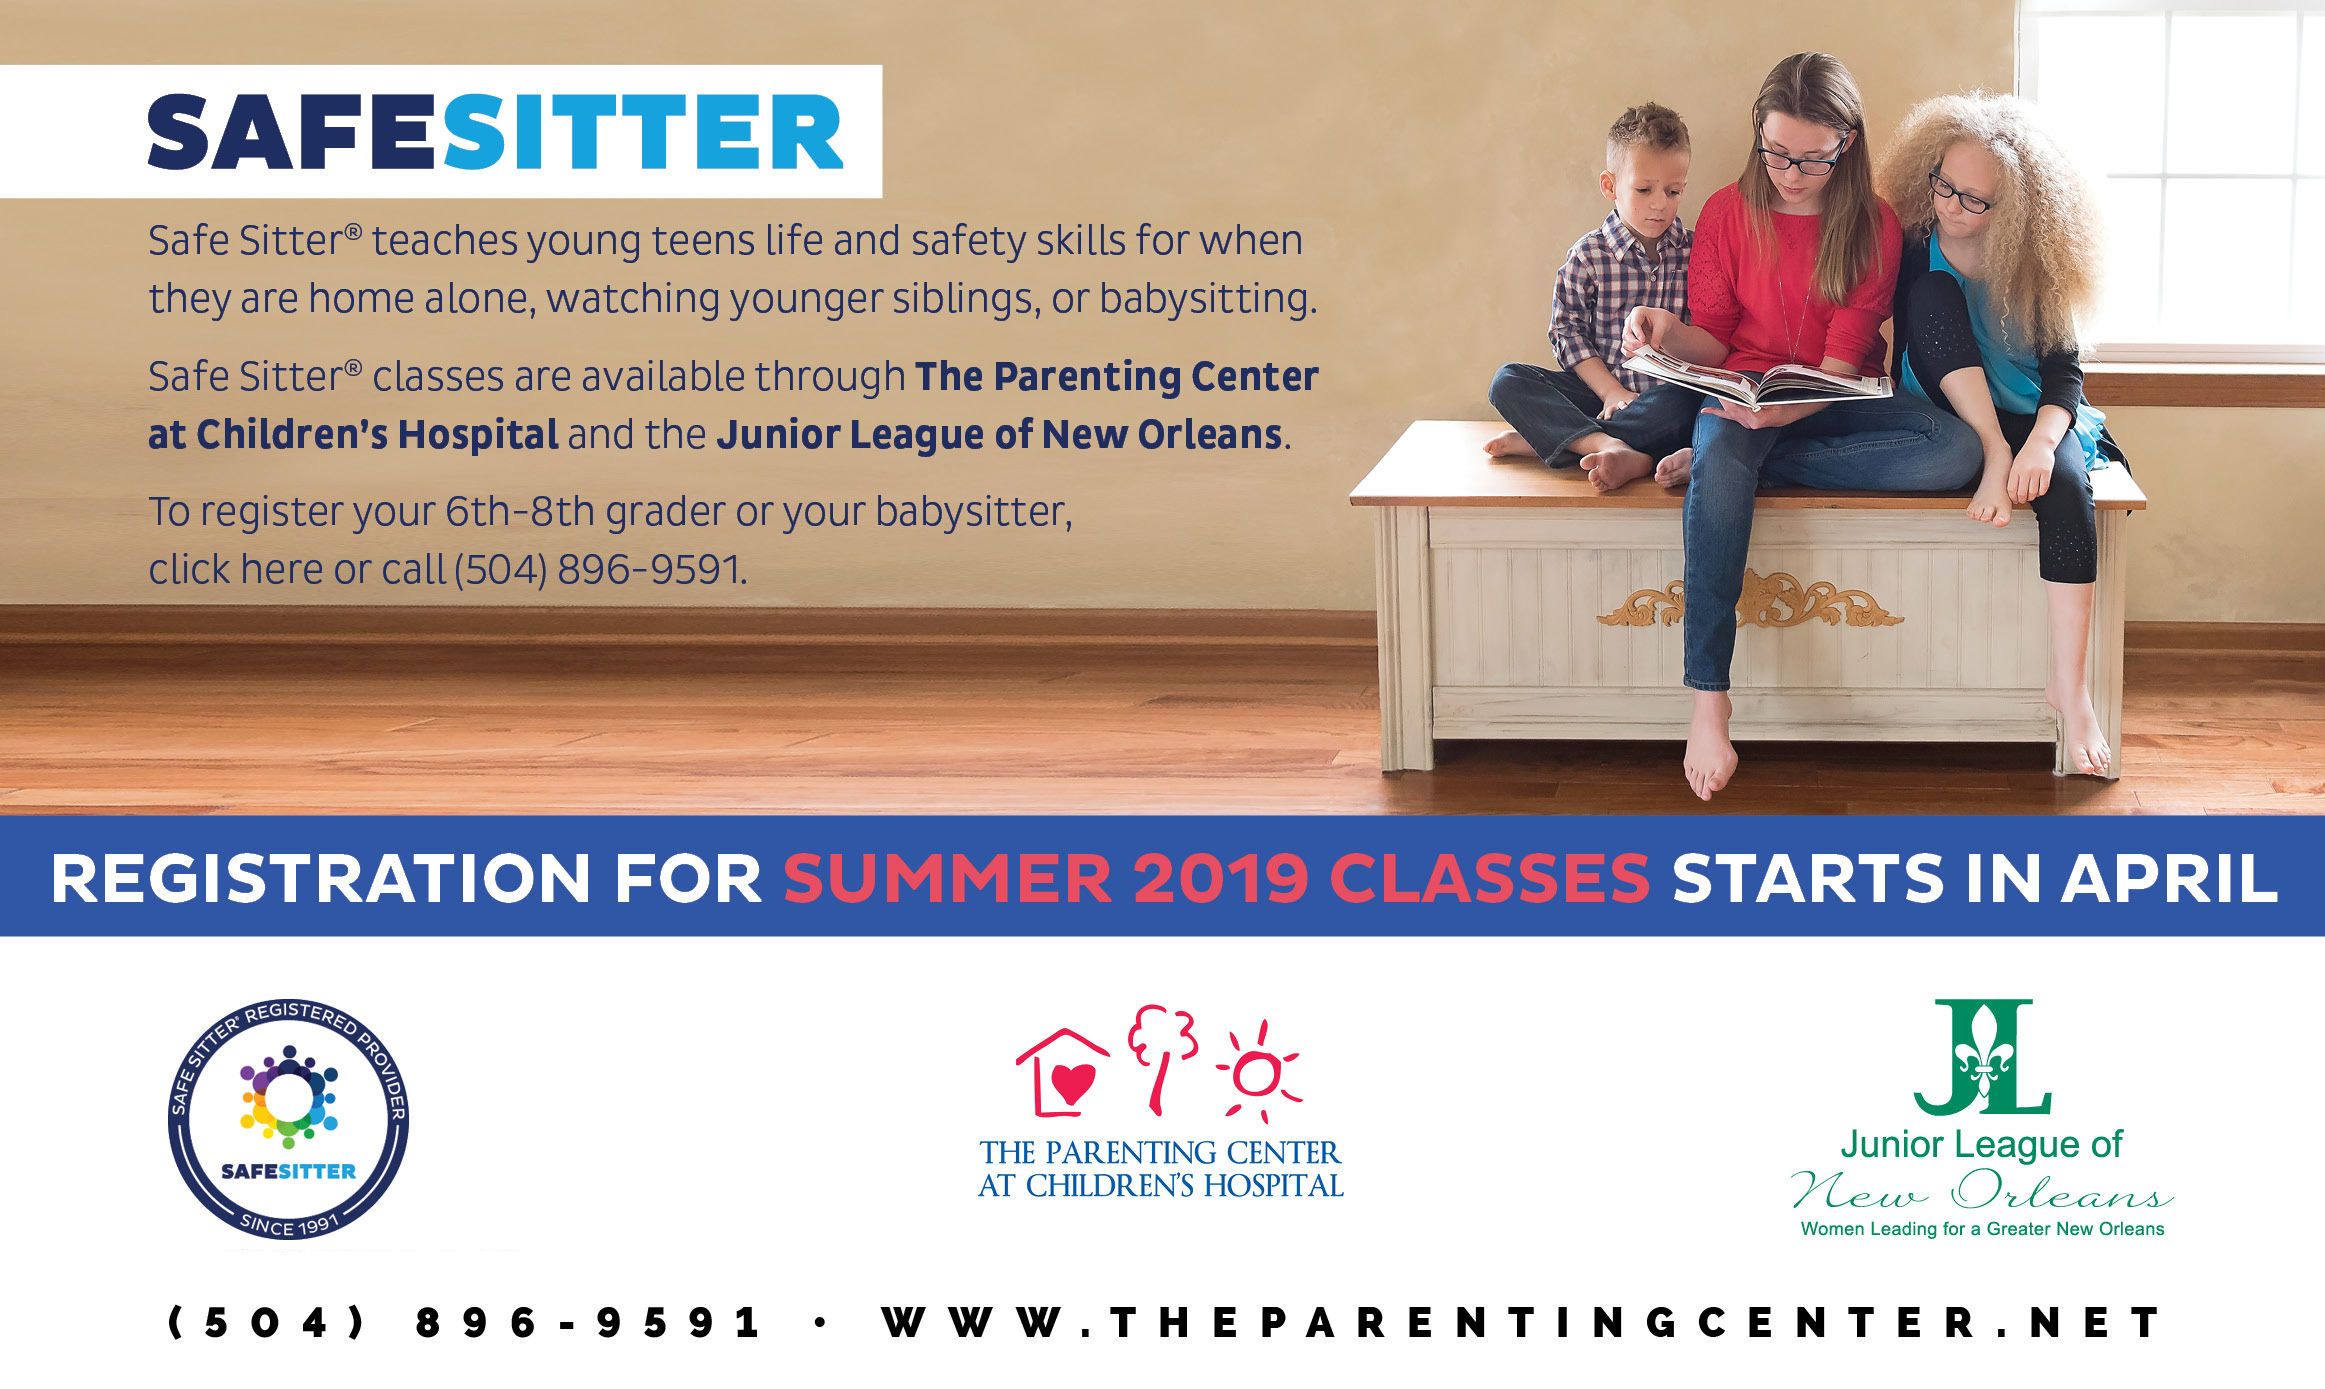 Safe Sitter program at The Parenting Center teaches young teens skills for babysitting or watching younger siblings. To register your 6th-8th grader or your babsitter, click on the image or call (504) 896-9591.